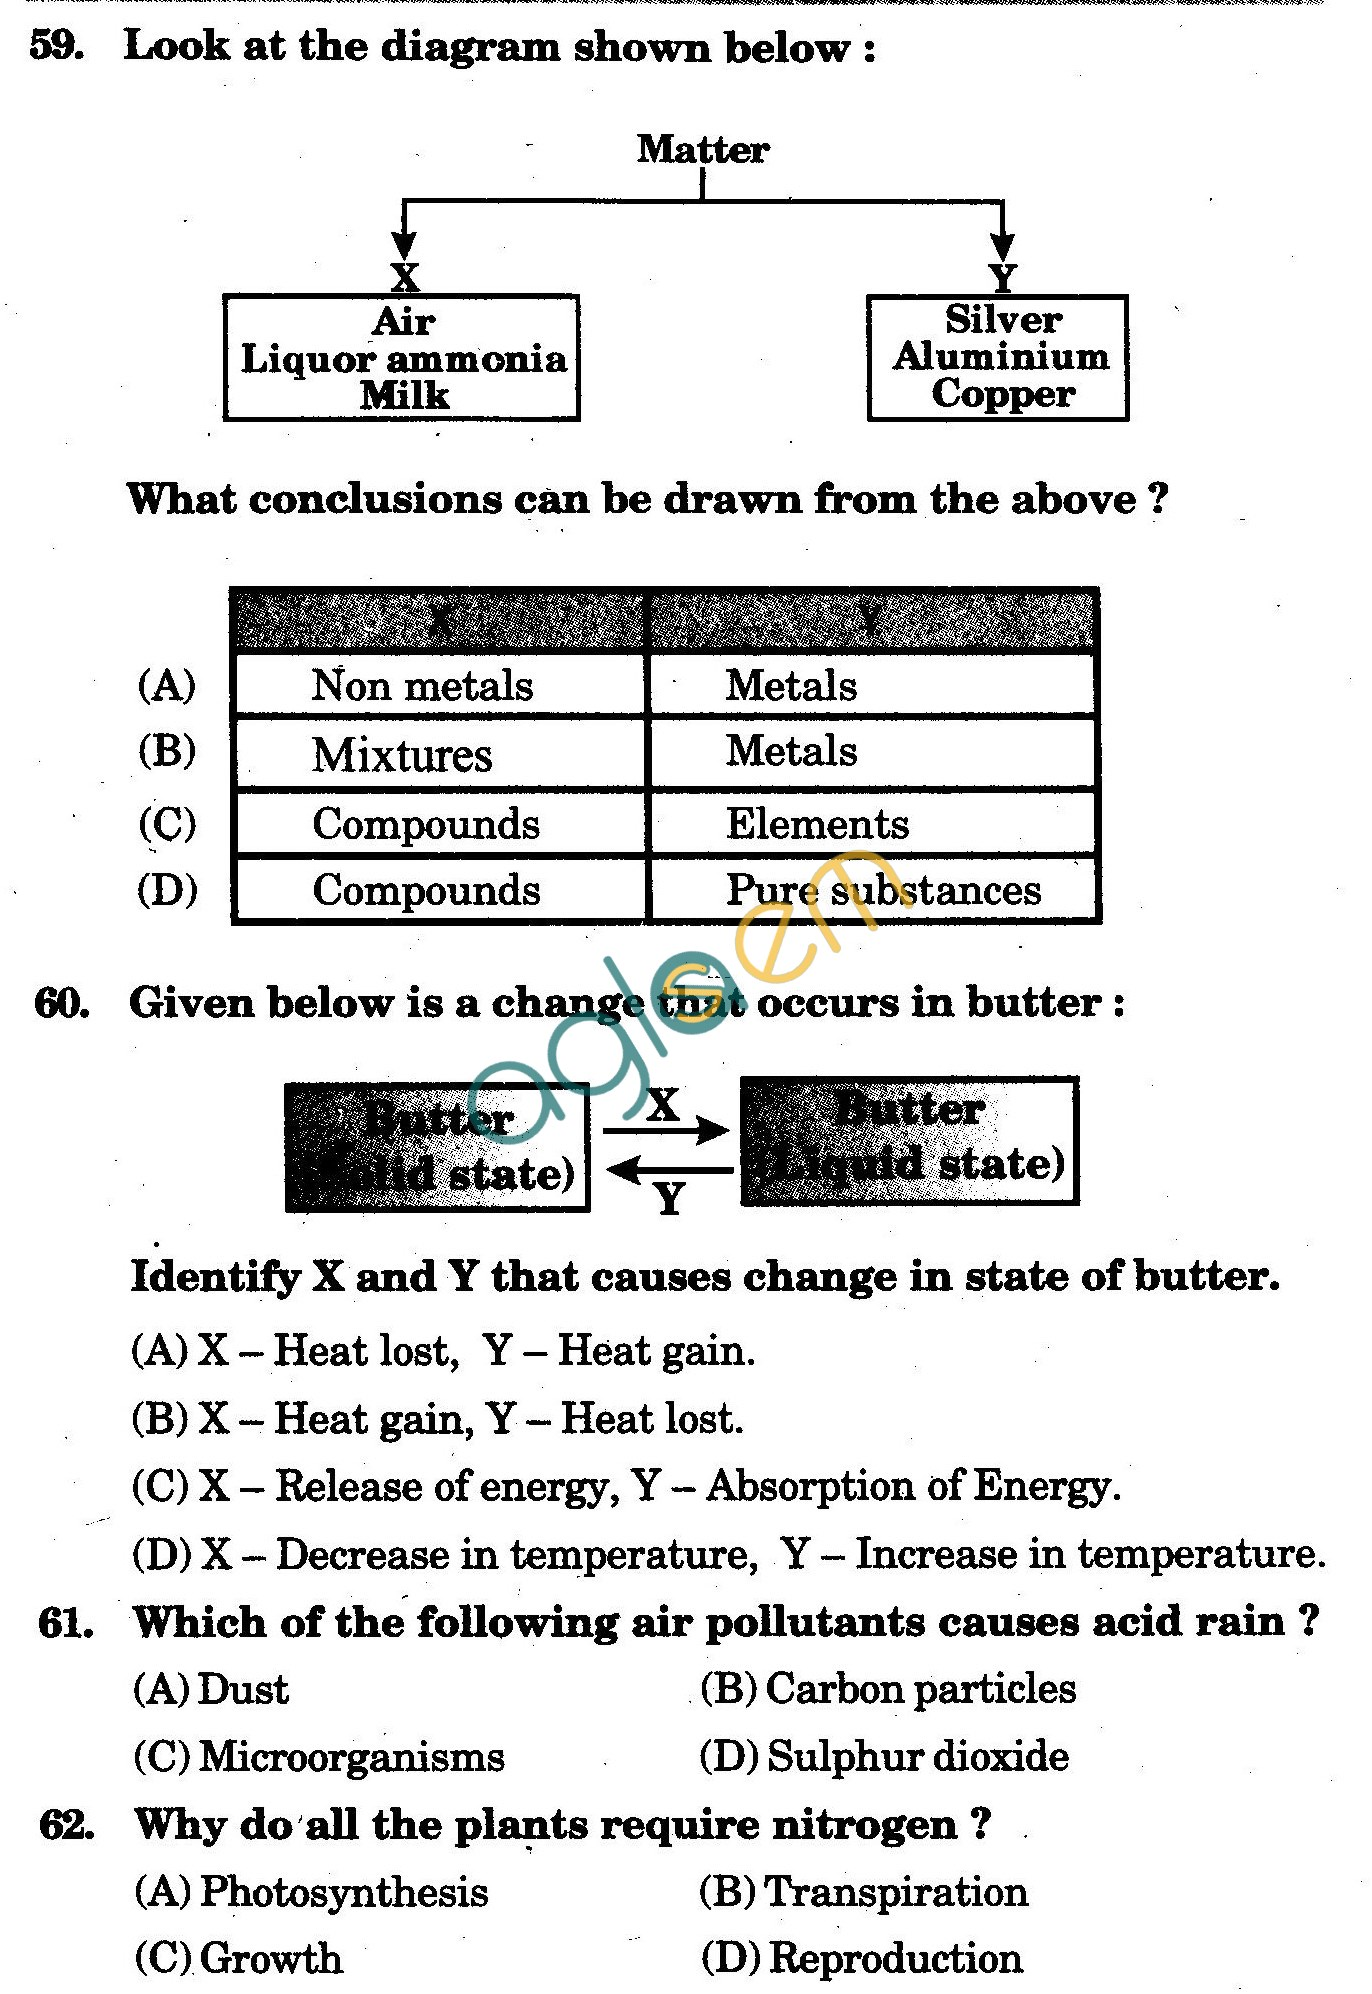 NSTSE 2010: Class VI Question Paper with Answers - Chemistry